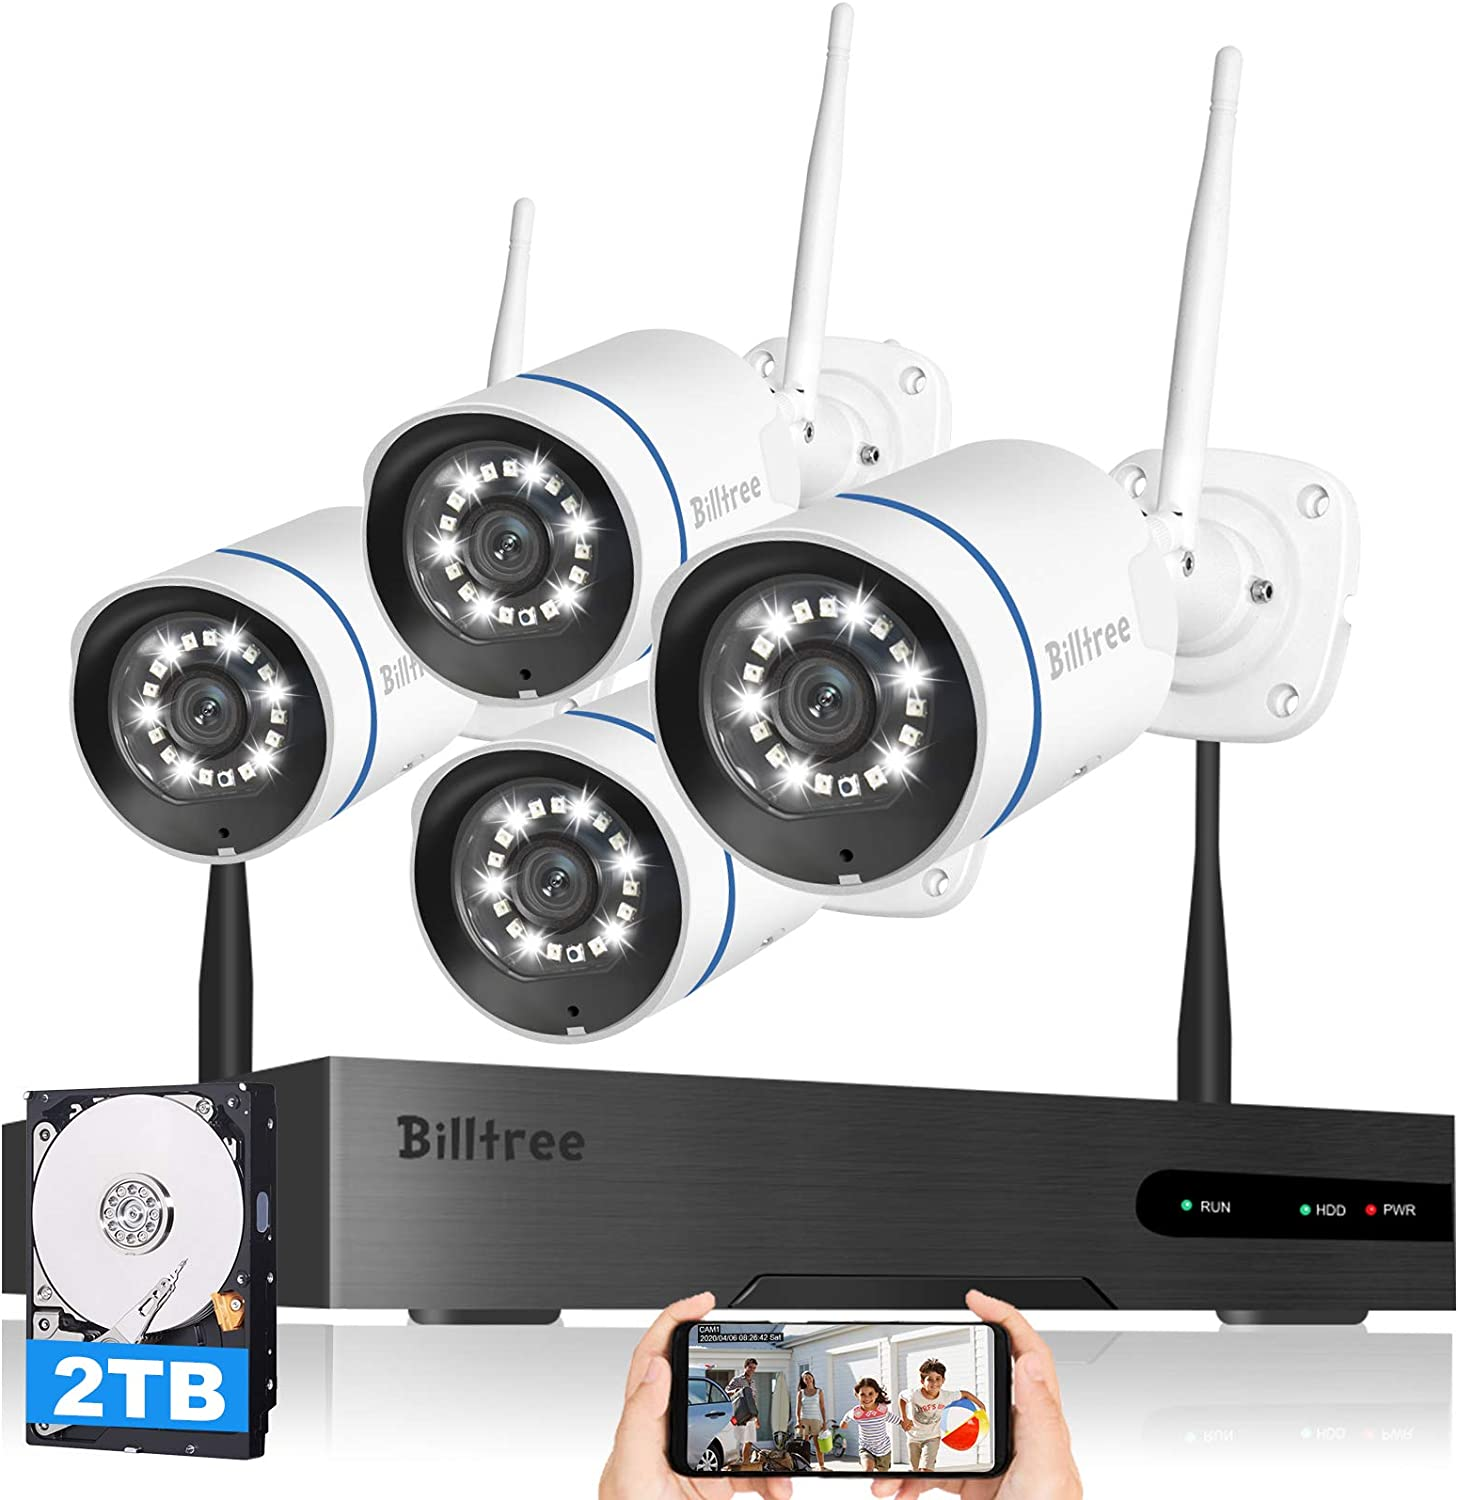 ?Floodlight & Siren Alarm?Wireless Security Camera System, Billtree 3MP Ultra-HD 8CH NVR with 2TB Hard Drive, 4Pcs 3MP WiFi Surveillance Cameras with AI Human Detection,2 Way Audio, Color Night Vision